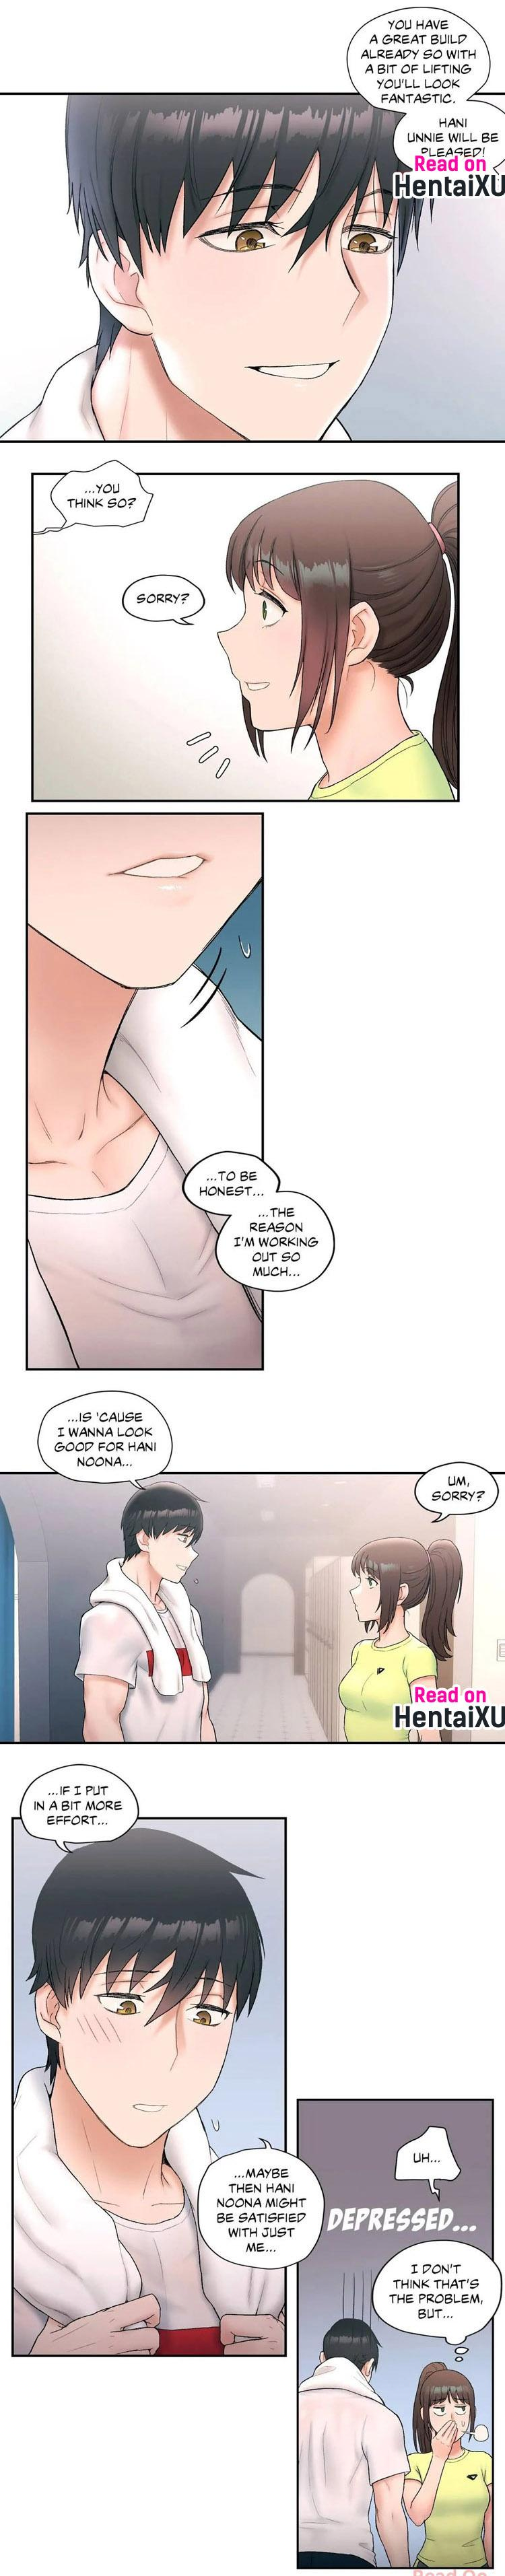 Sexercise Ch.9/? 147